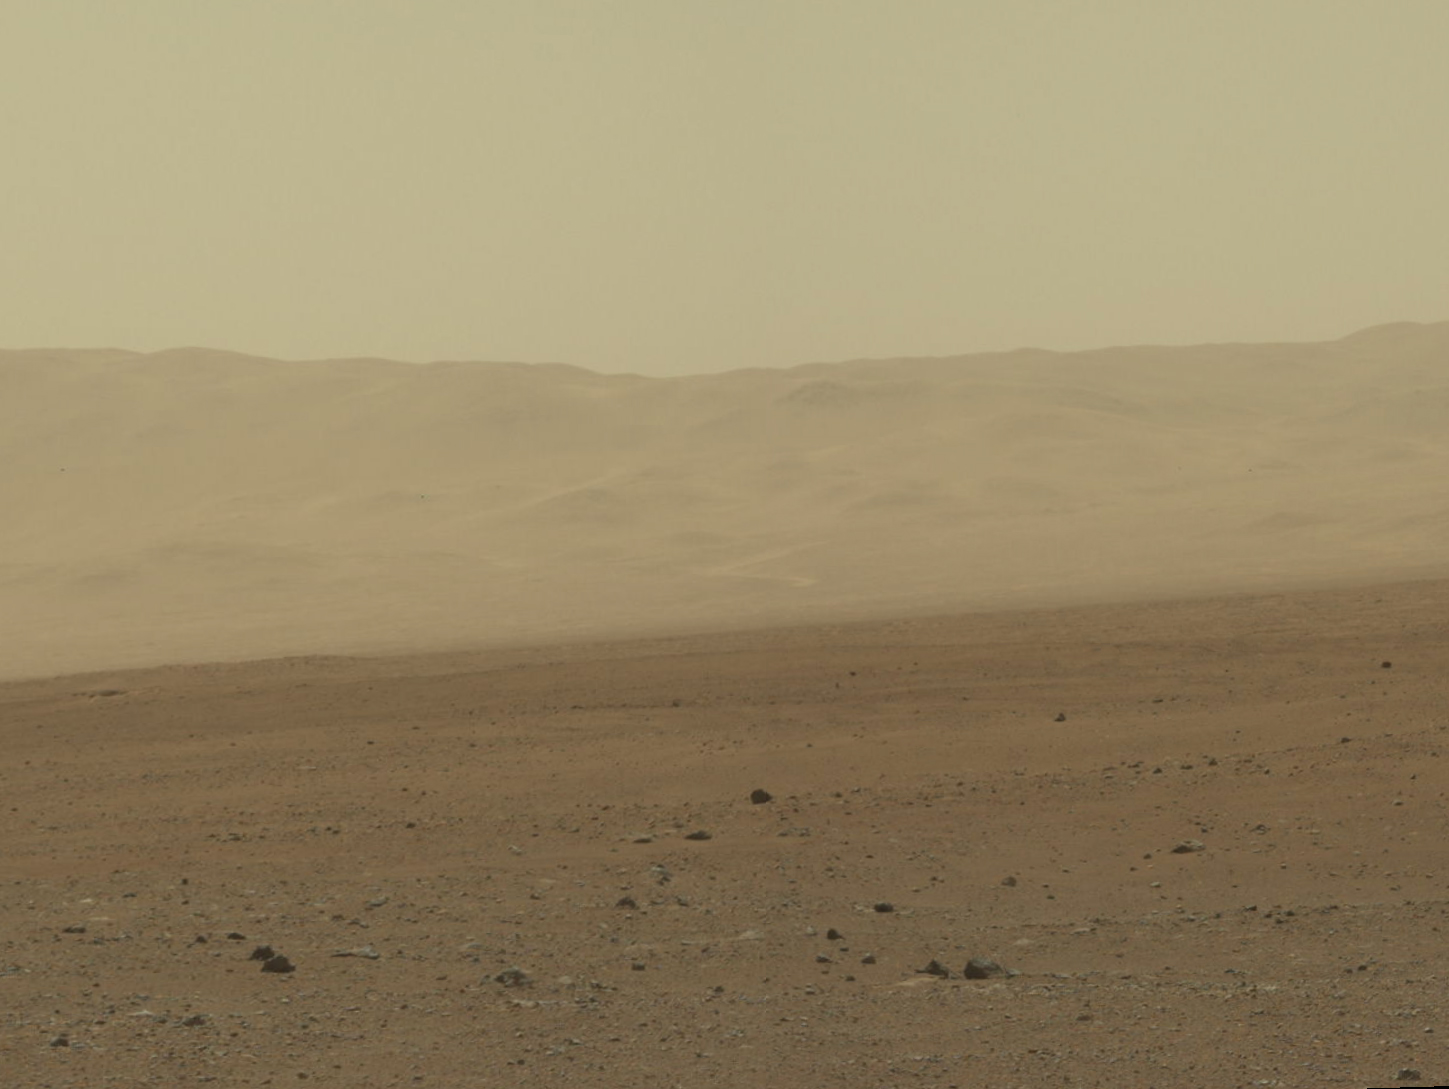 Landscape of Mars from Curiosity